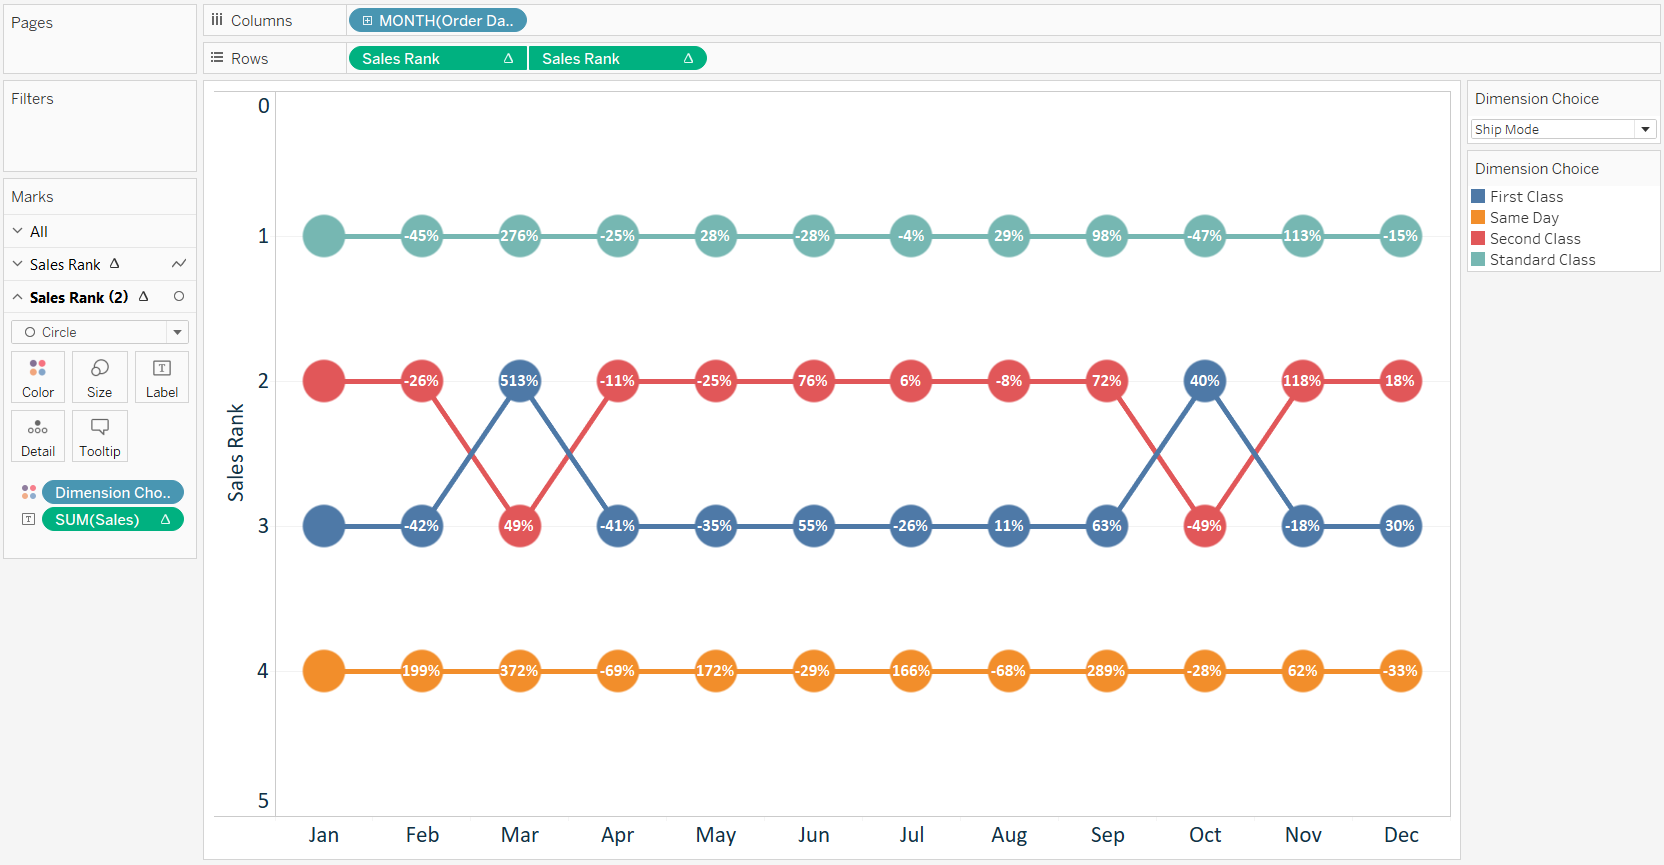 tableau-bump-chart-sales-by-ship-mode